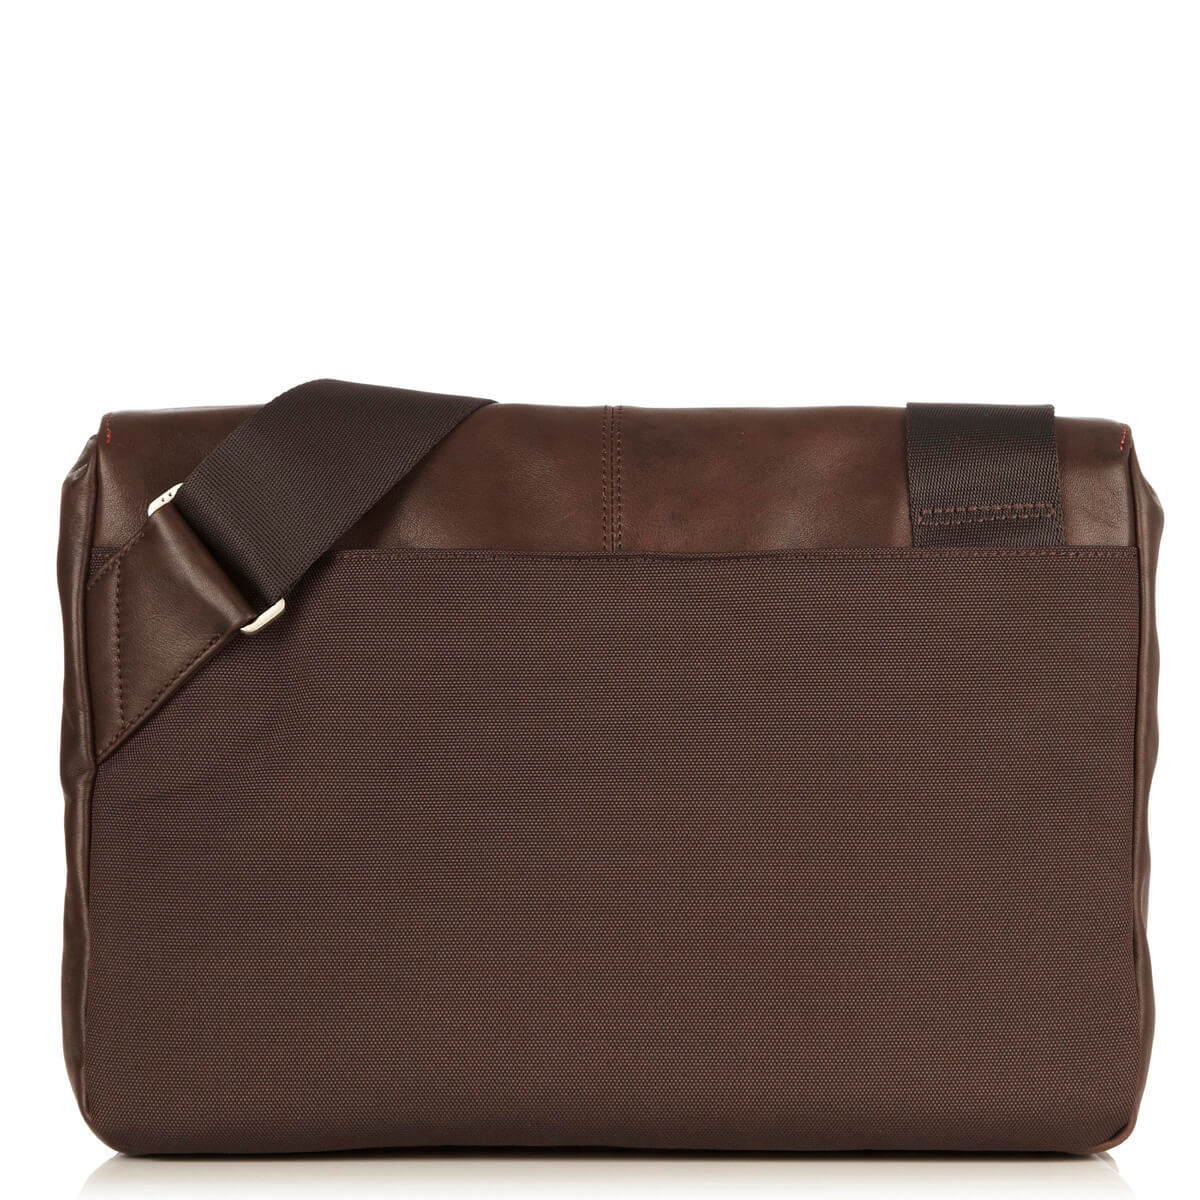 "Kinsale Leather Laptop Messenger Bag - 13"" -  Brown 